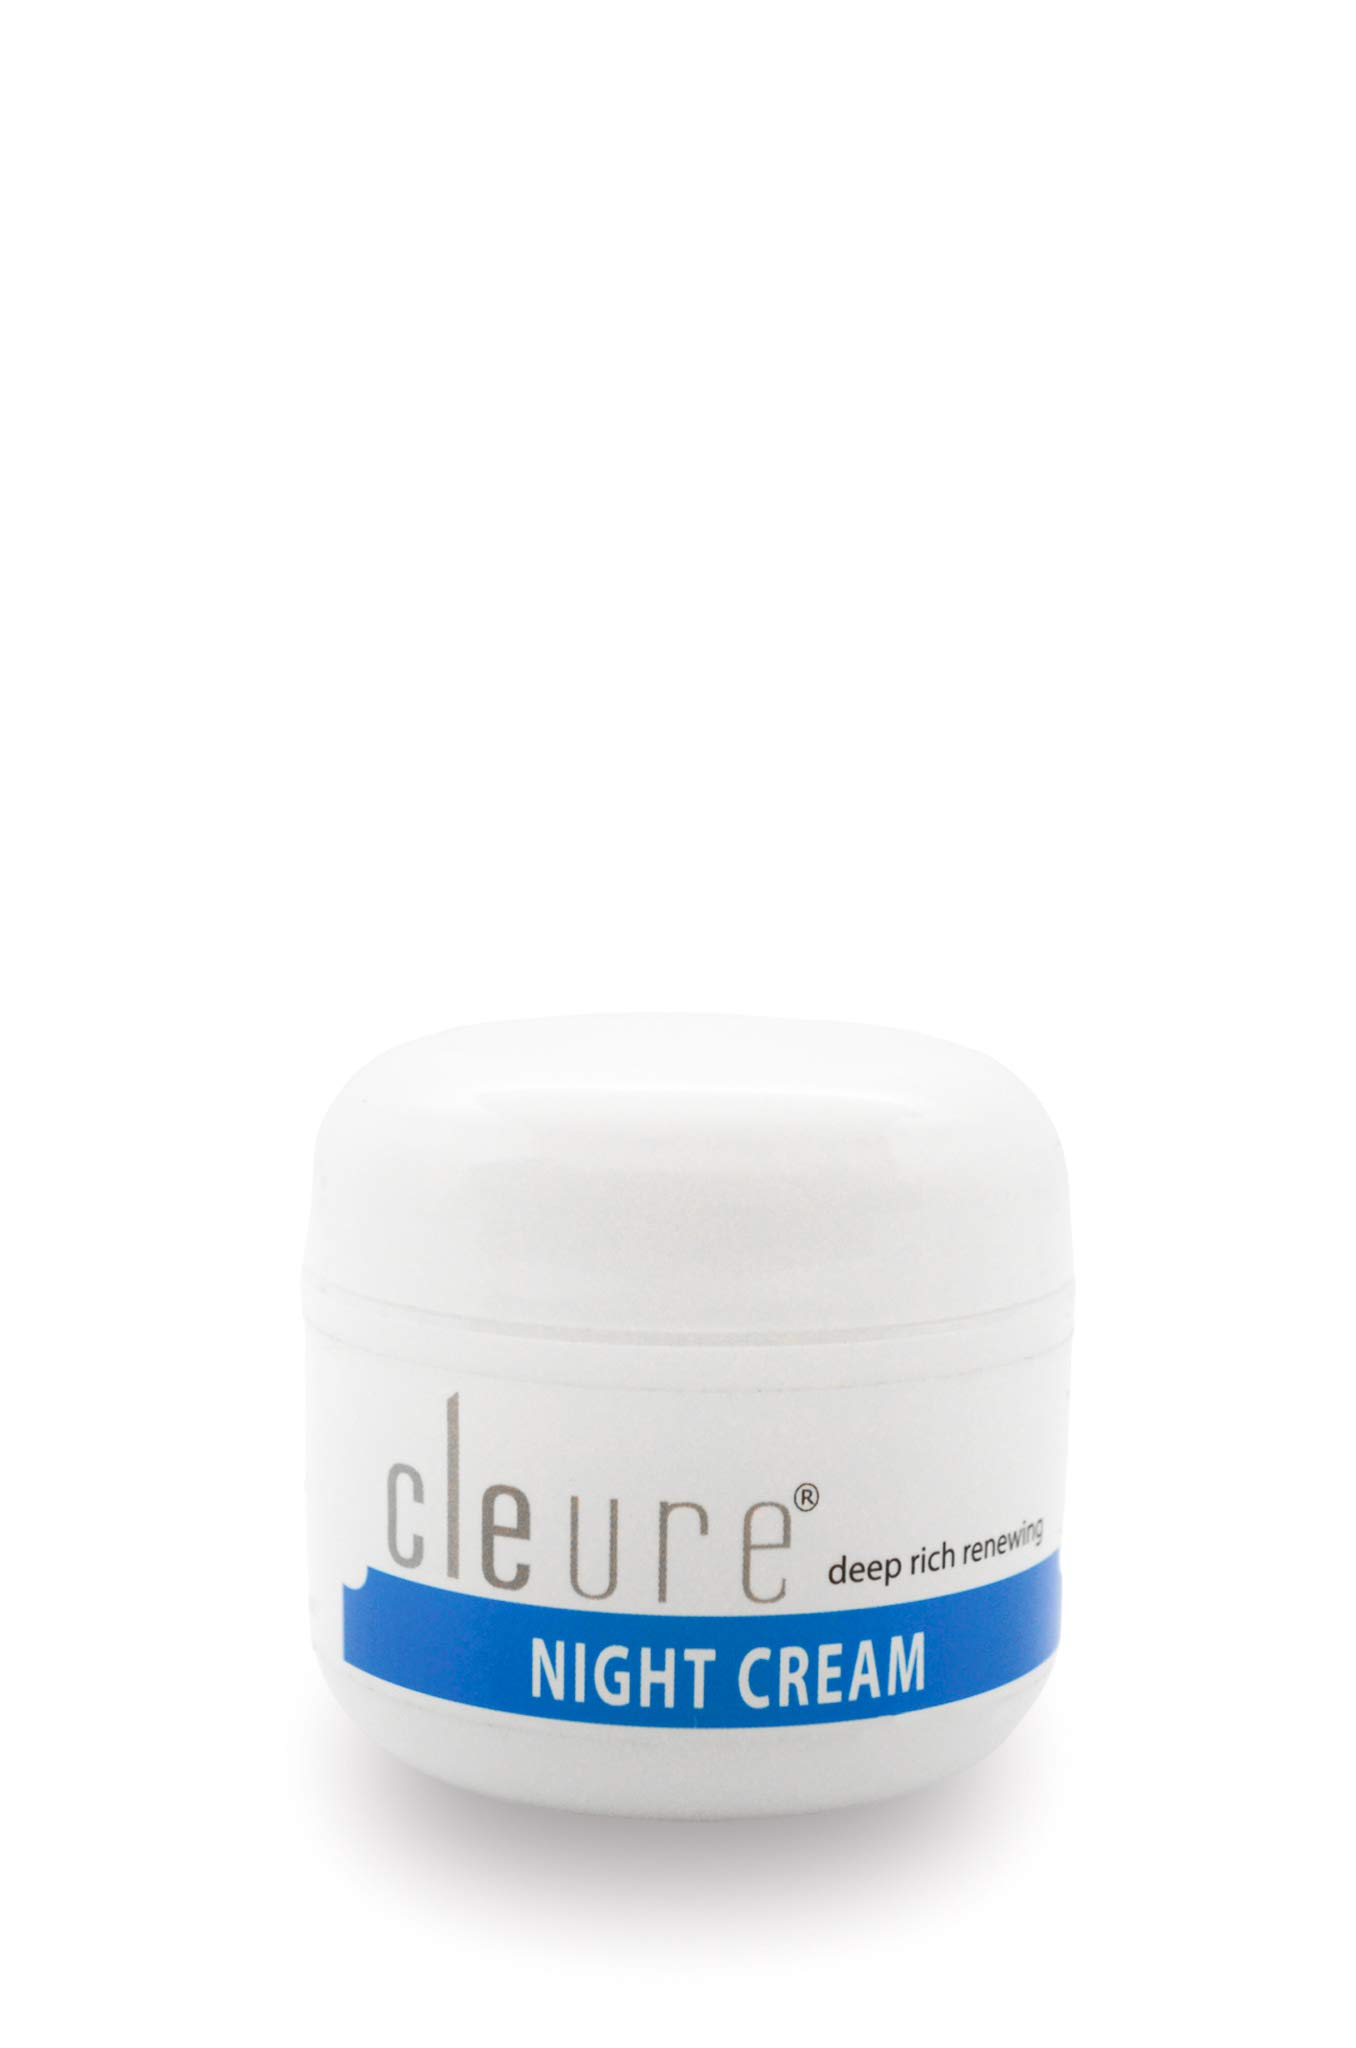 Cleure Hyaluronic Acid and Shea Butter Anti-Aging Night Cream for Sensitive Skin, Fragrance, Gluten, Salicylate and Paraben Free, 2 oz